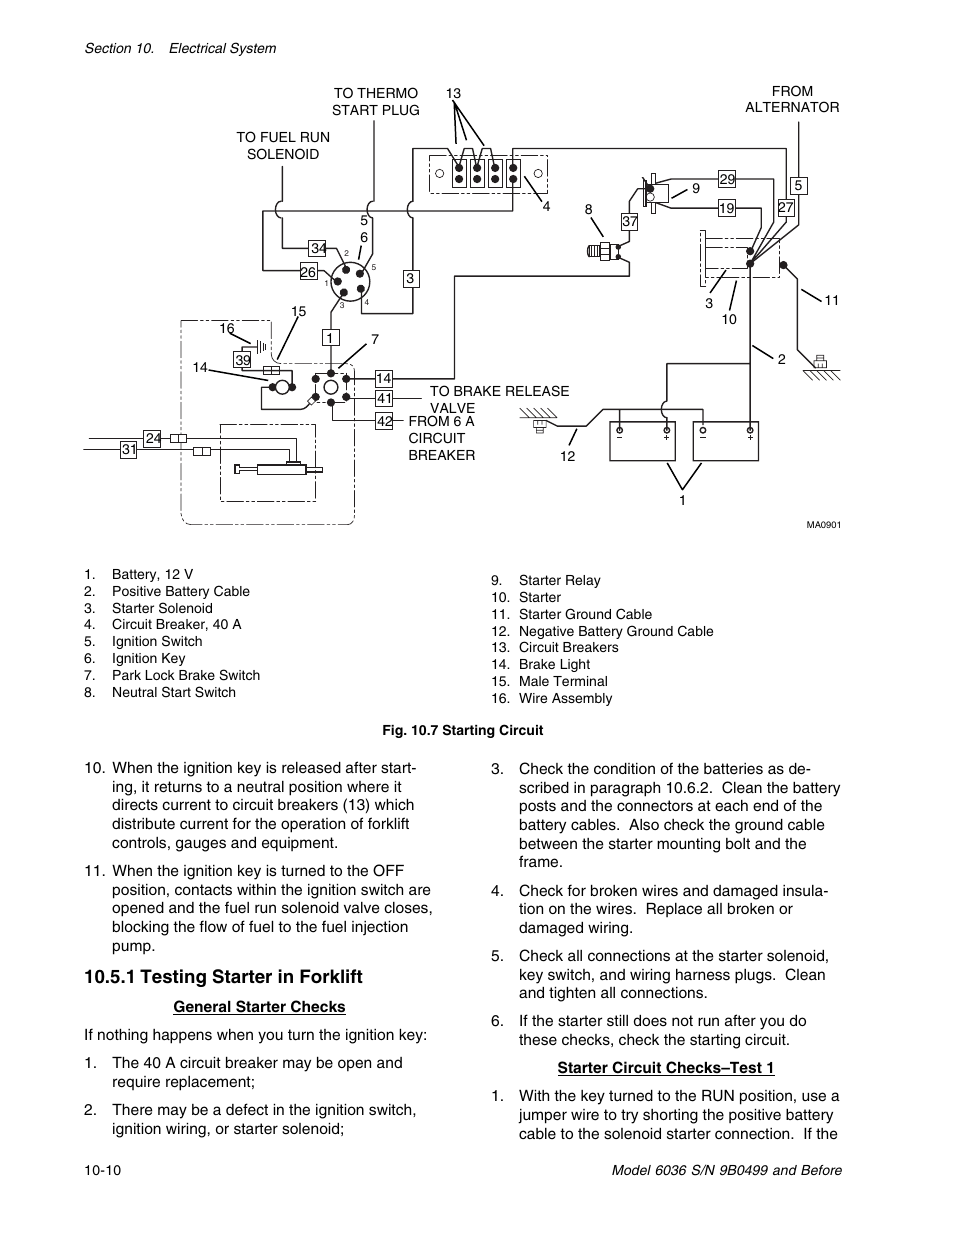 skytrak 6036 service manual page204 1 testing starter in forklift skytrak 6036 service manual user skytrak 6036 wiring diagram at bayanpartner.co